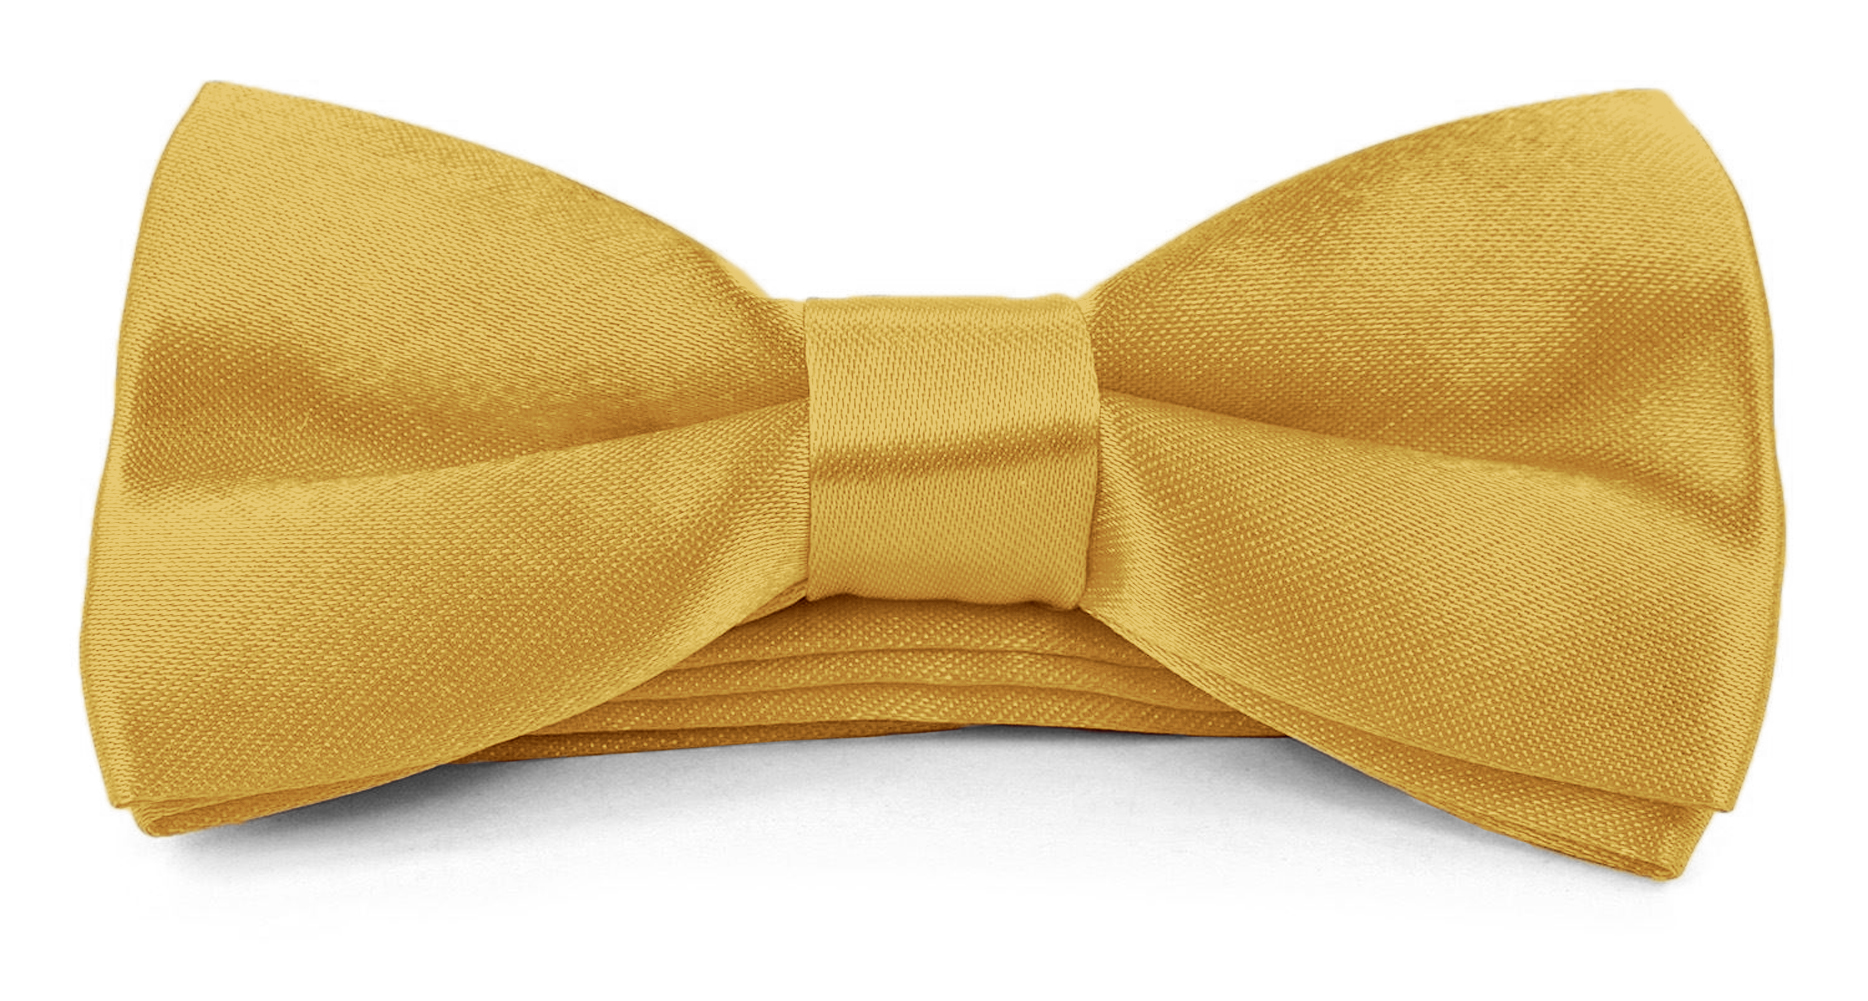 Moda Di Raza - Boys/Young Men Banded Bow Tie Pre Tied 4x2 Satin Silk BowTies - Golden Yellow